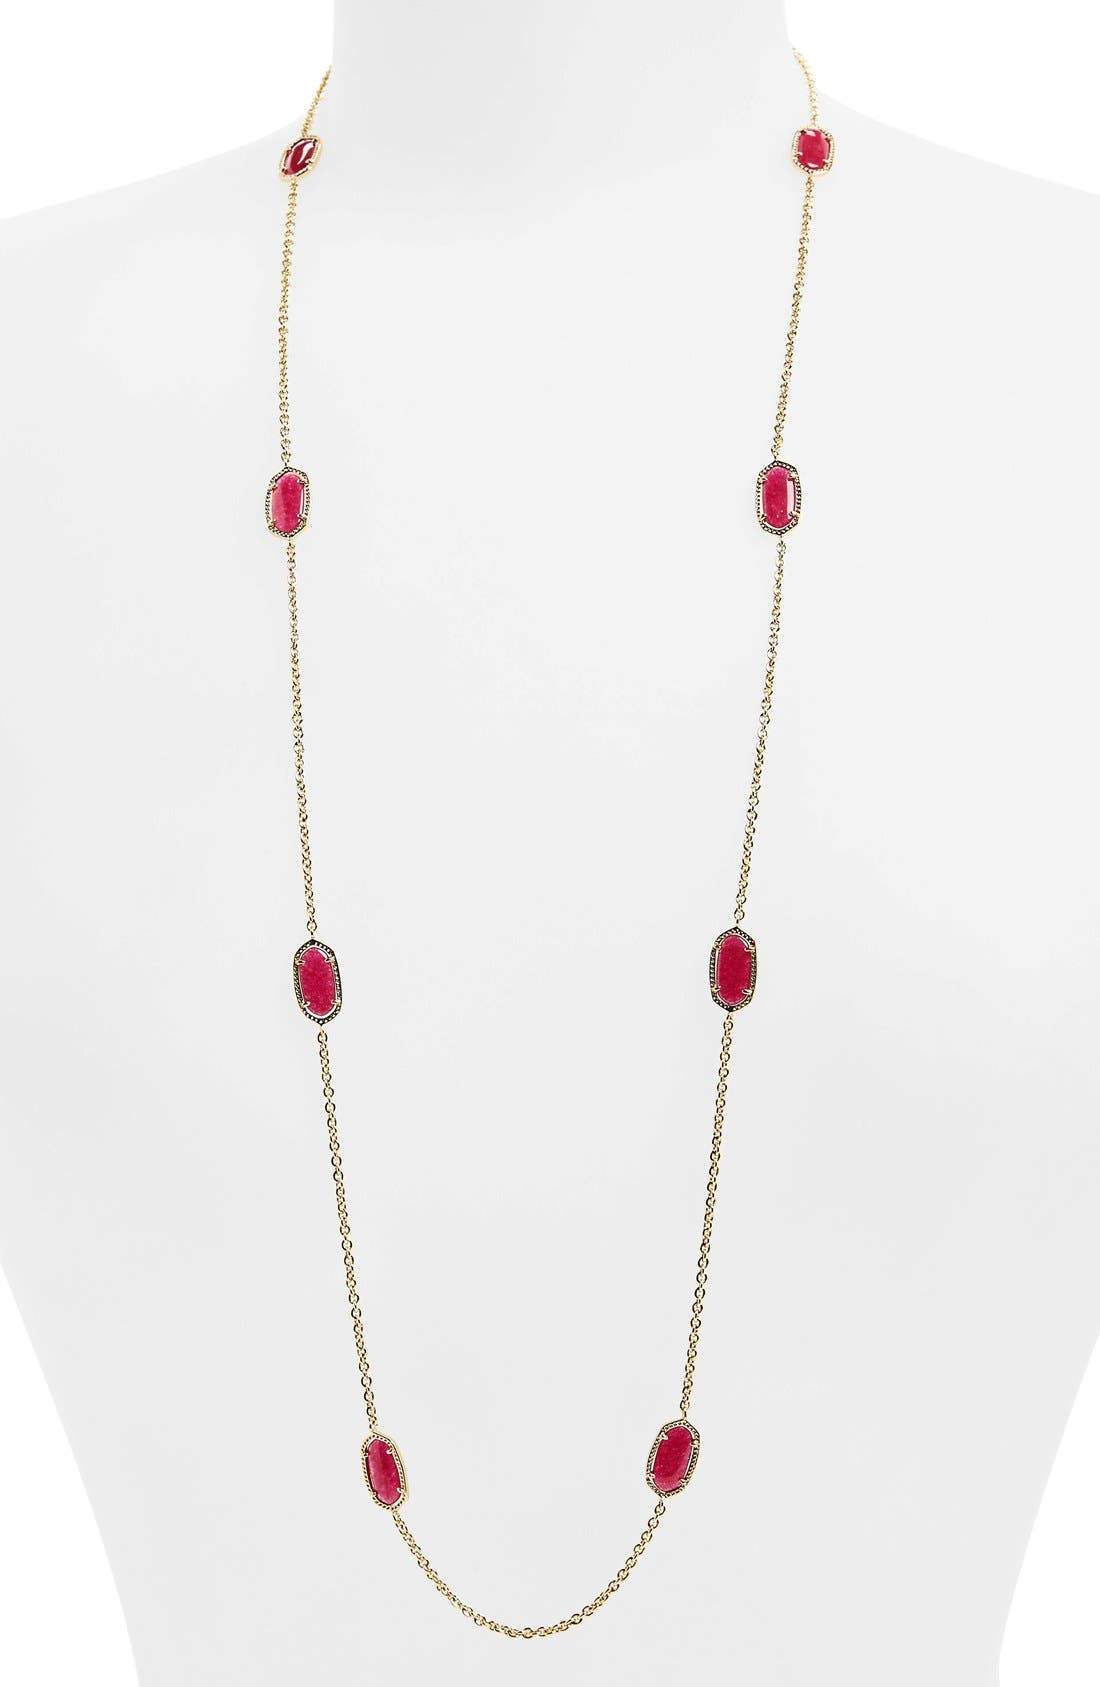 Kendra Scott 'Kelsie' Station Necklace